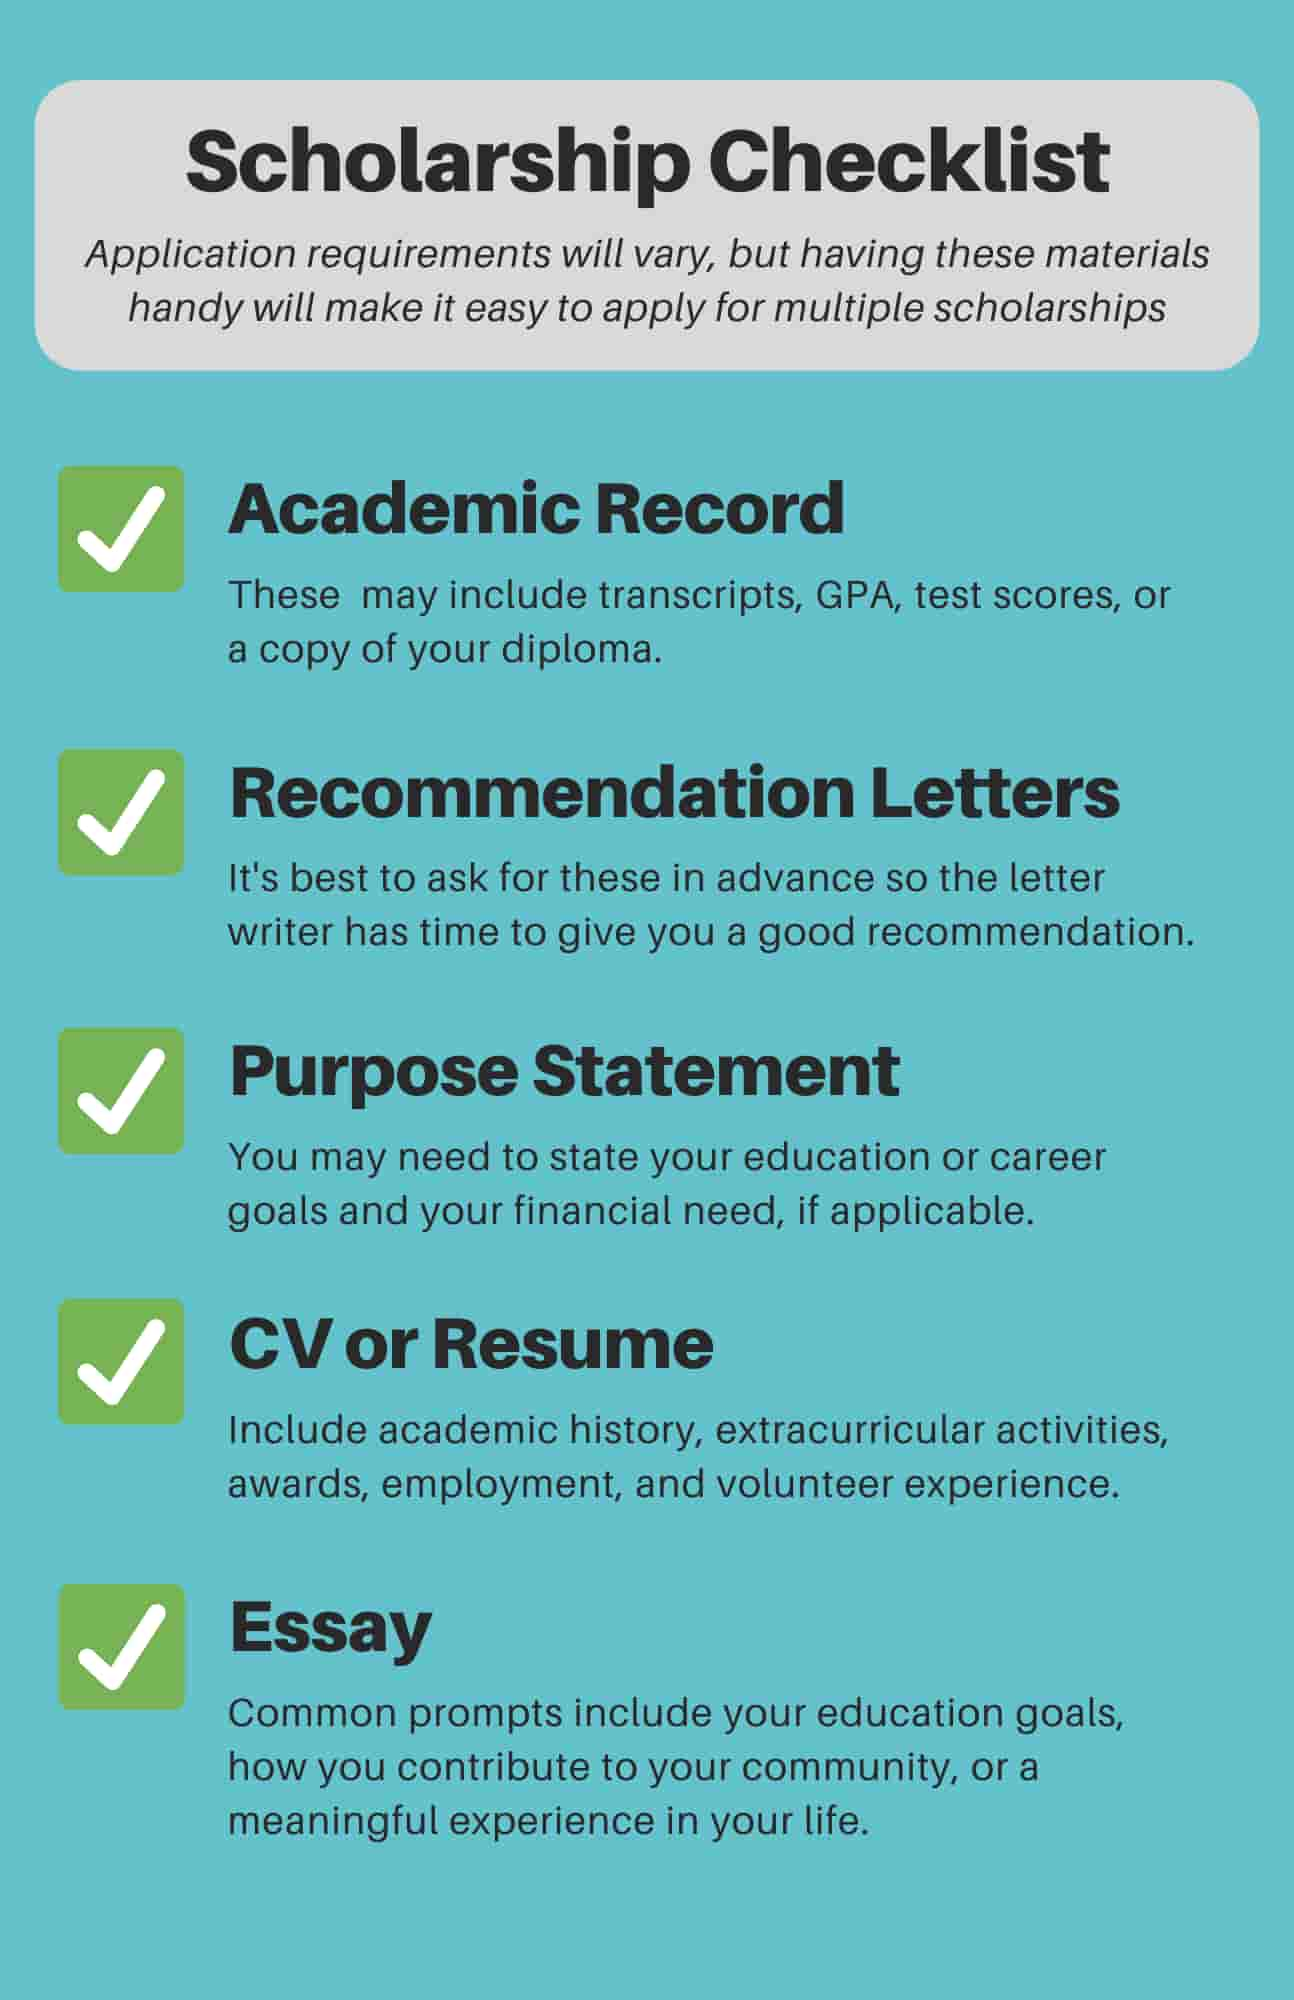 checklist for applying for a scholarship